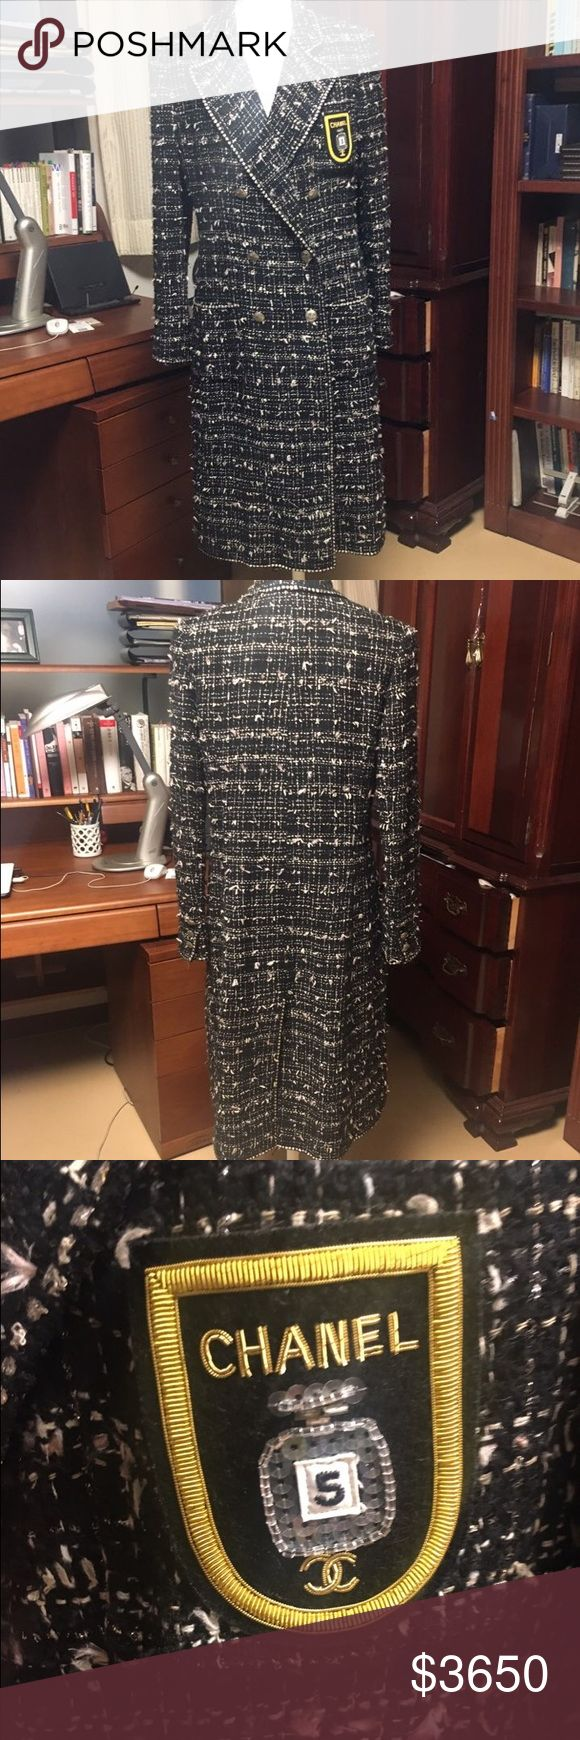 ($2950) Authentic chanel coat / jacket 100% authentic. Patch has been added to original design (can take off if requested, it was hand sewn). Excellent condition with no flaws to note. Size 40. Selling matching skirt separately  Will sell for $2950 (pp protected). CHANEL Jackets & Coats Trench Coats